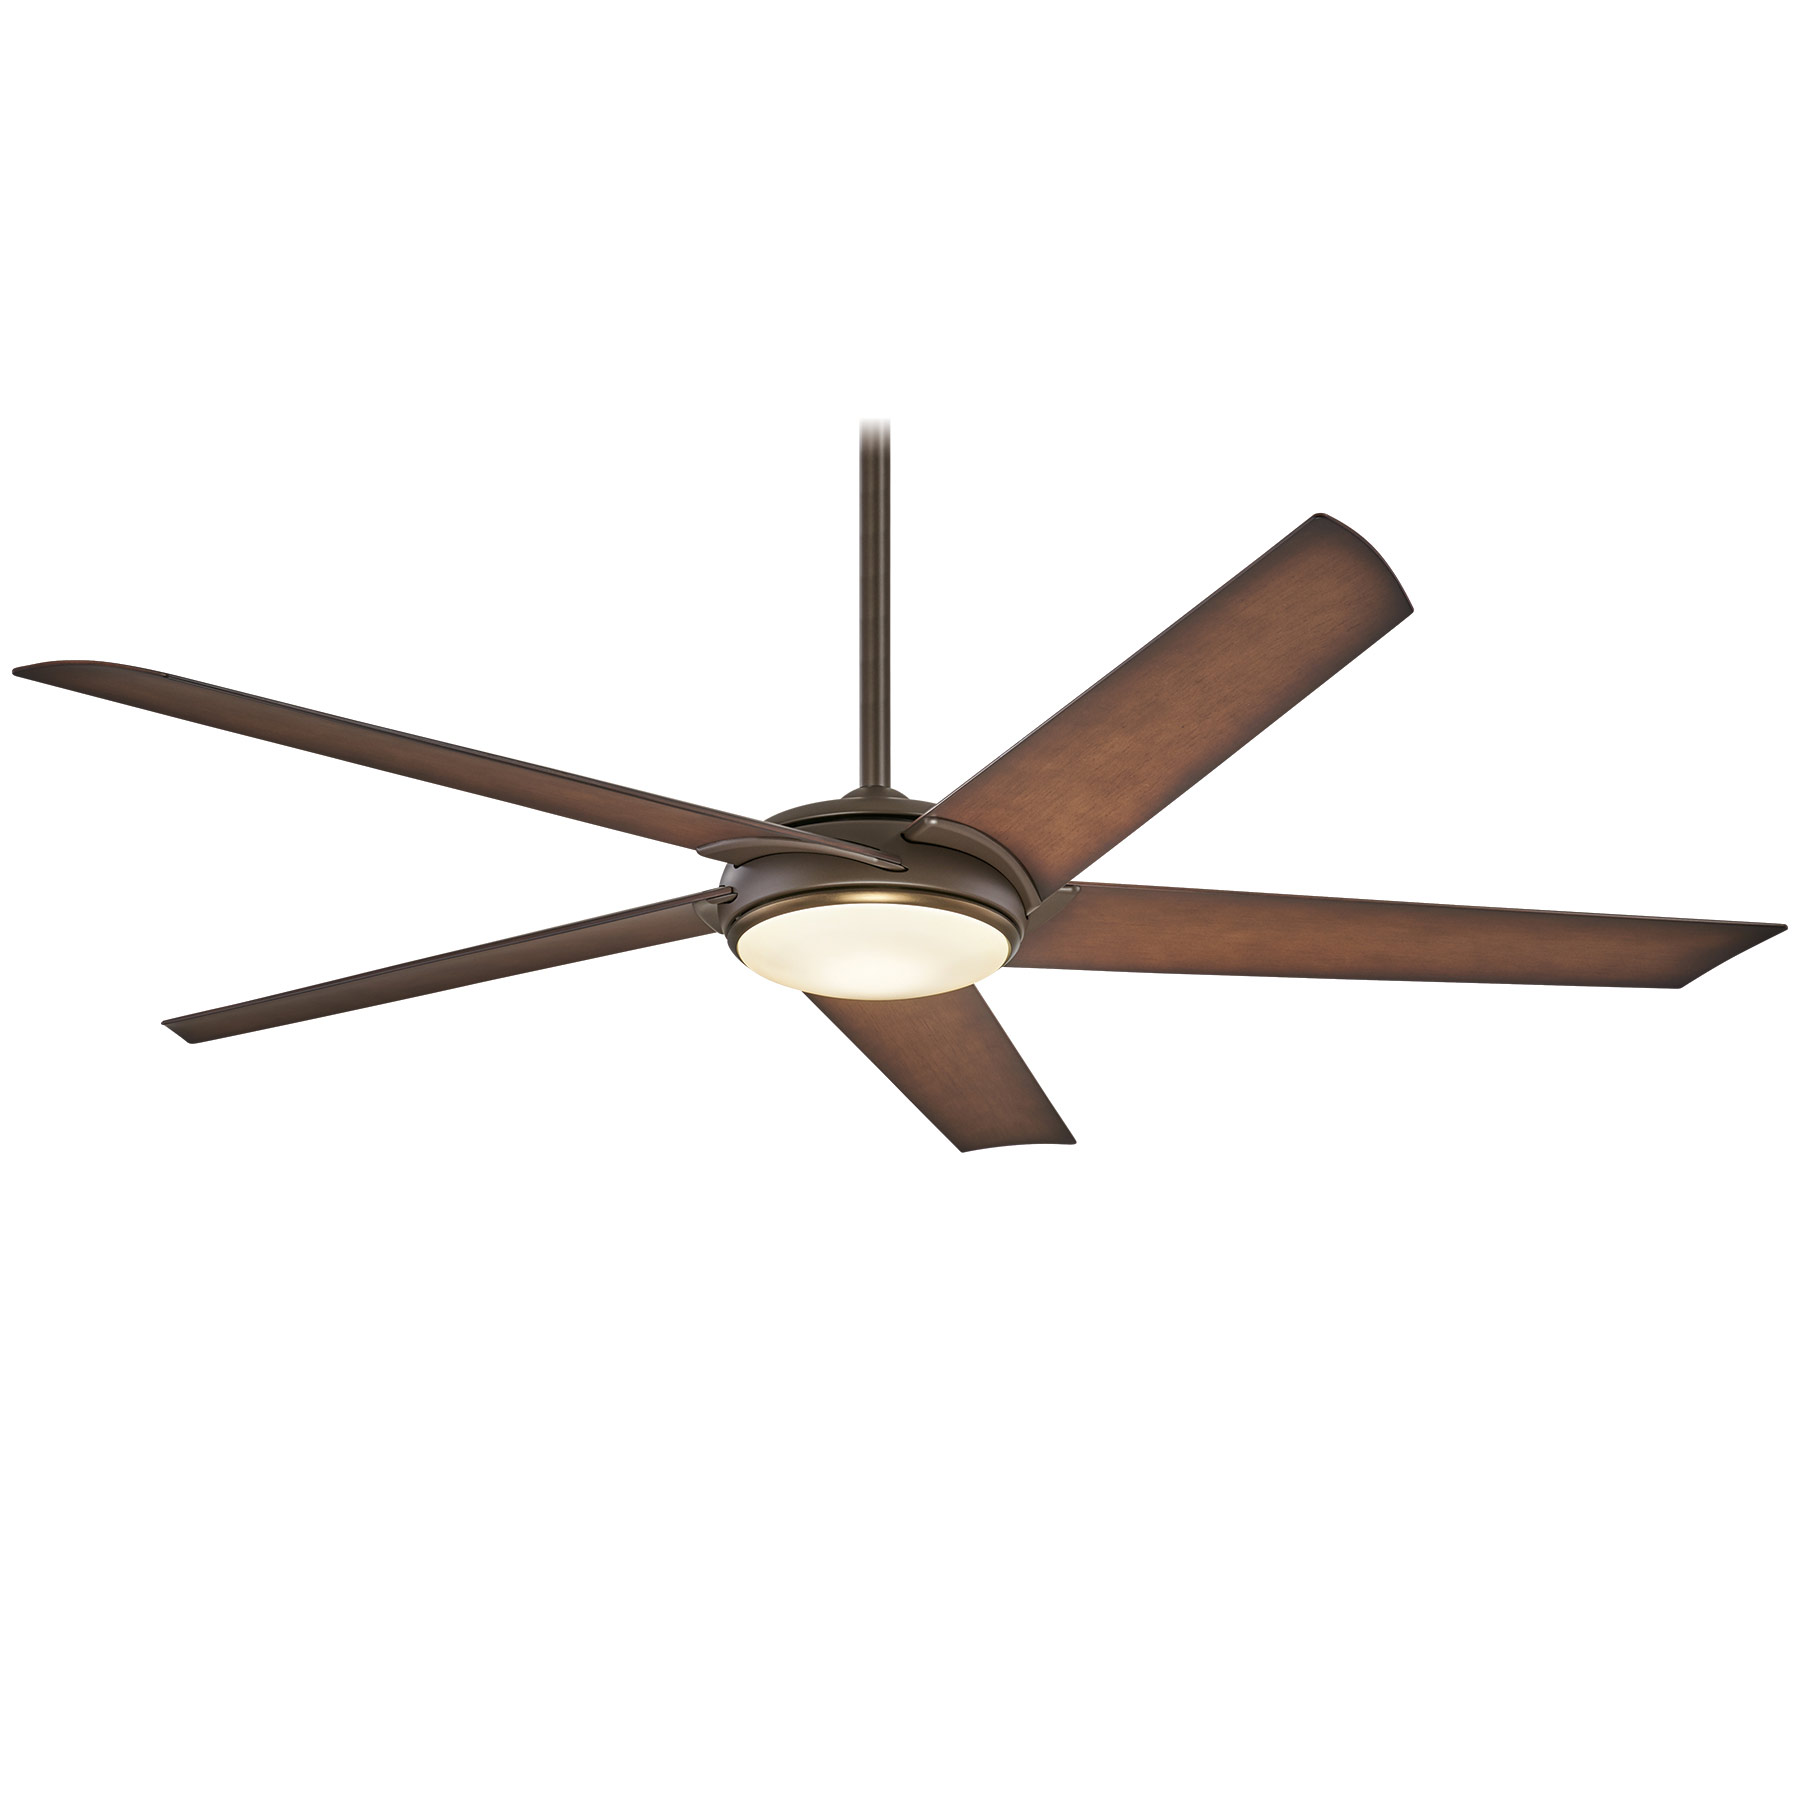 Ceiling Fan with Light by Minka Aire